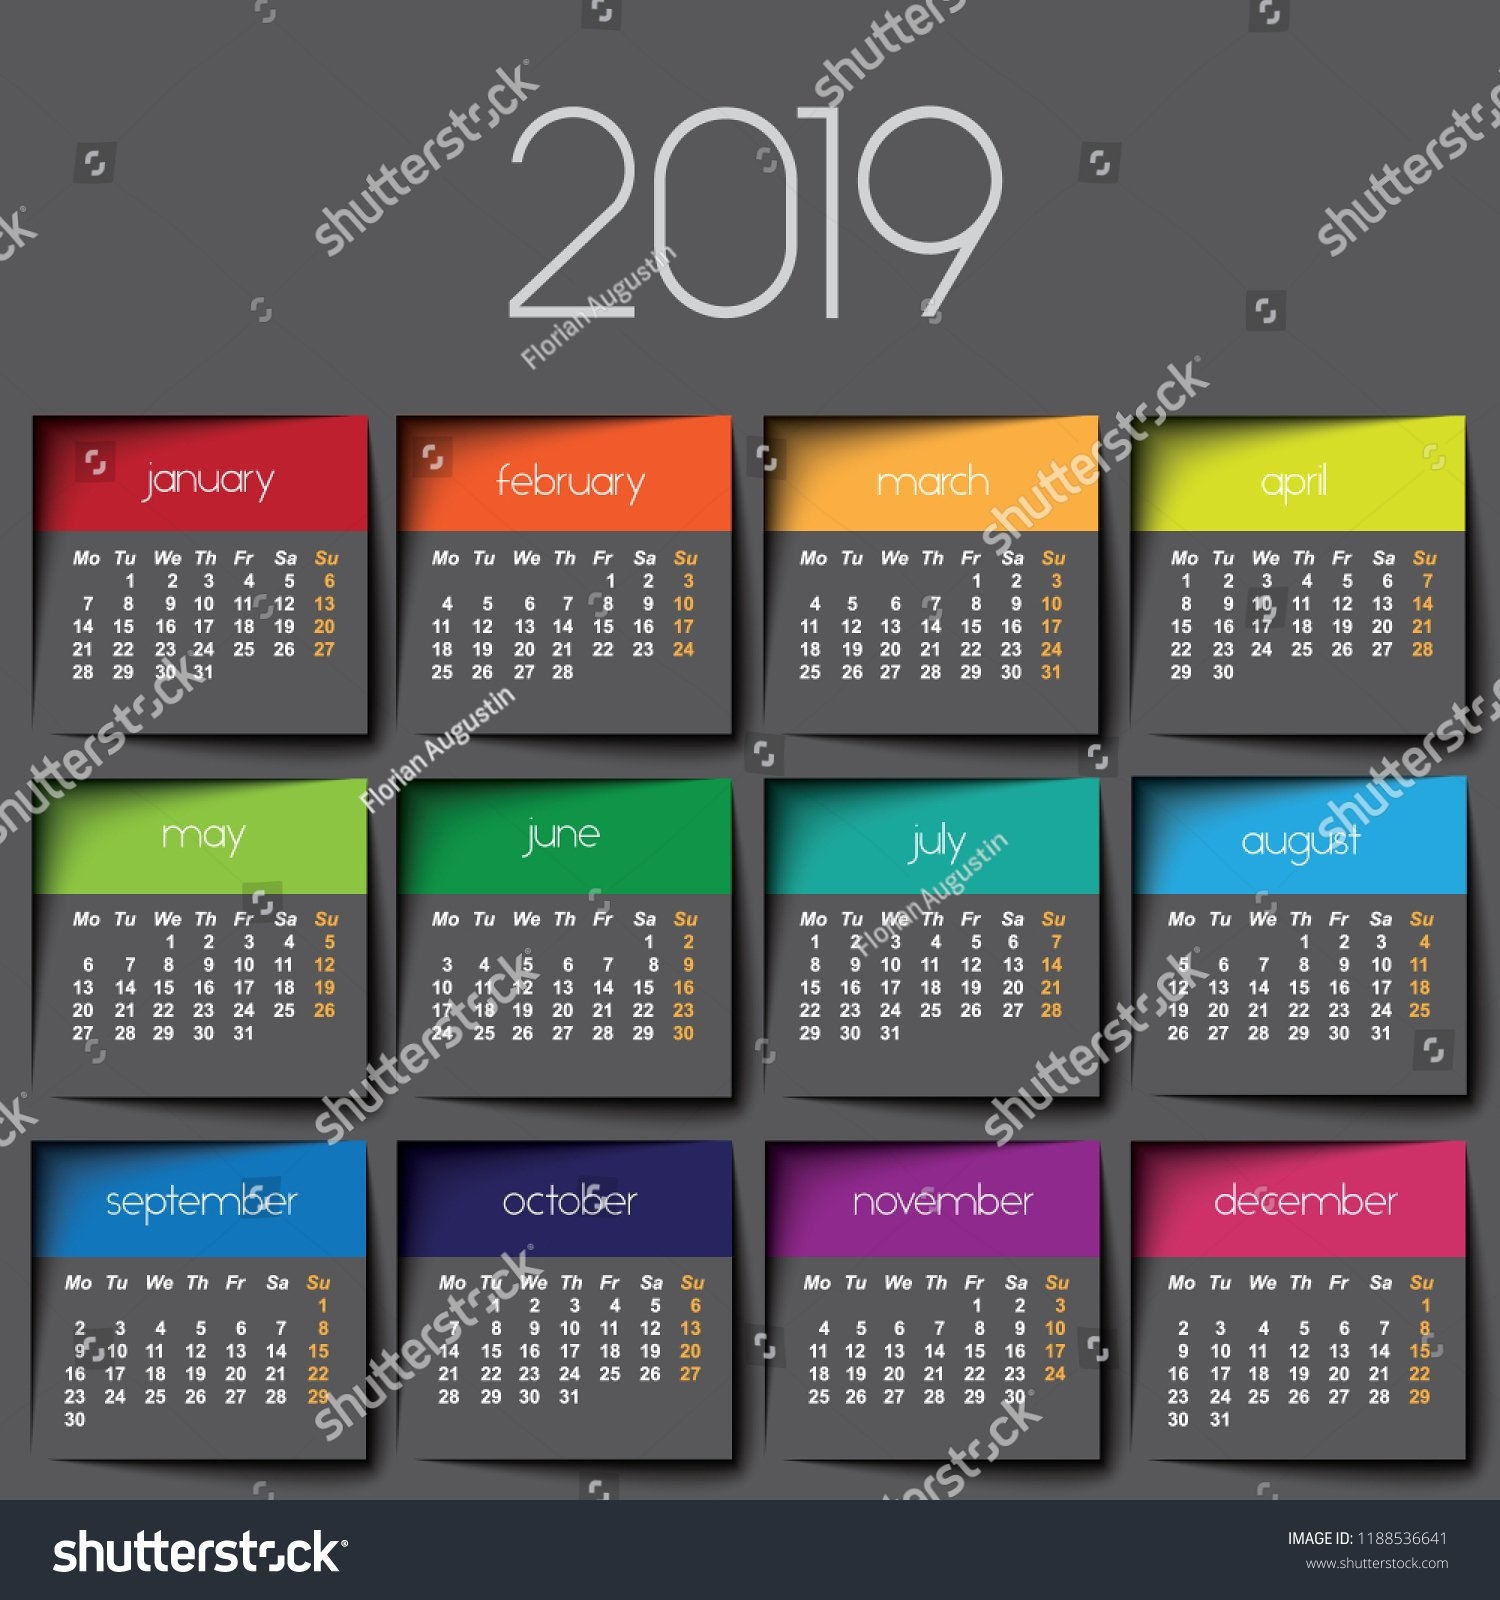 2019 Calendar Color Post Stock Vector (Royalty Free) 1188536641 J 2019 Calendar